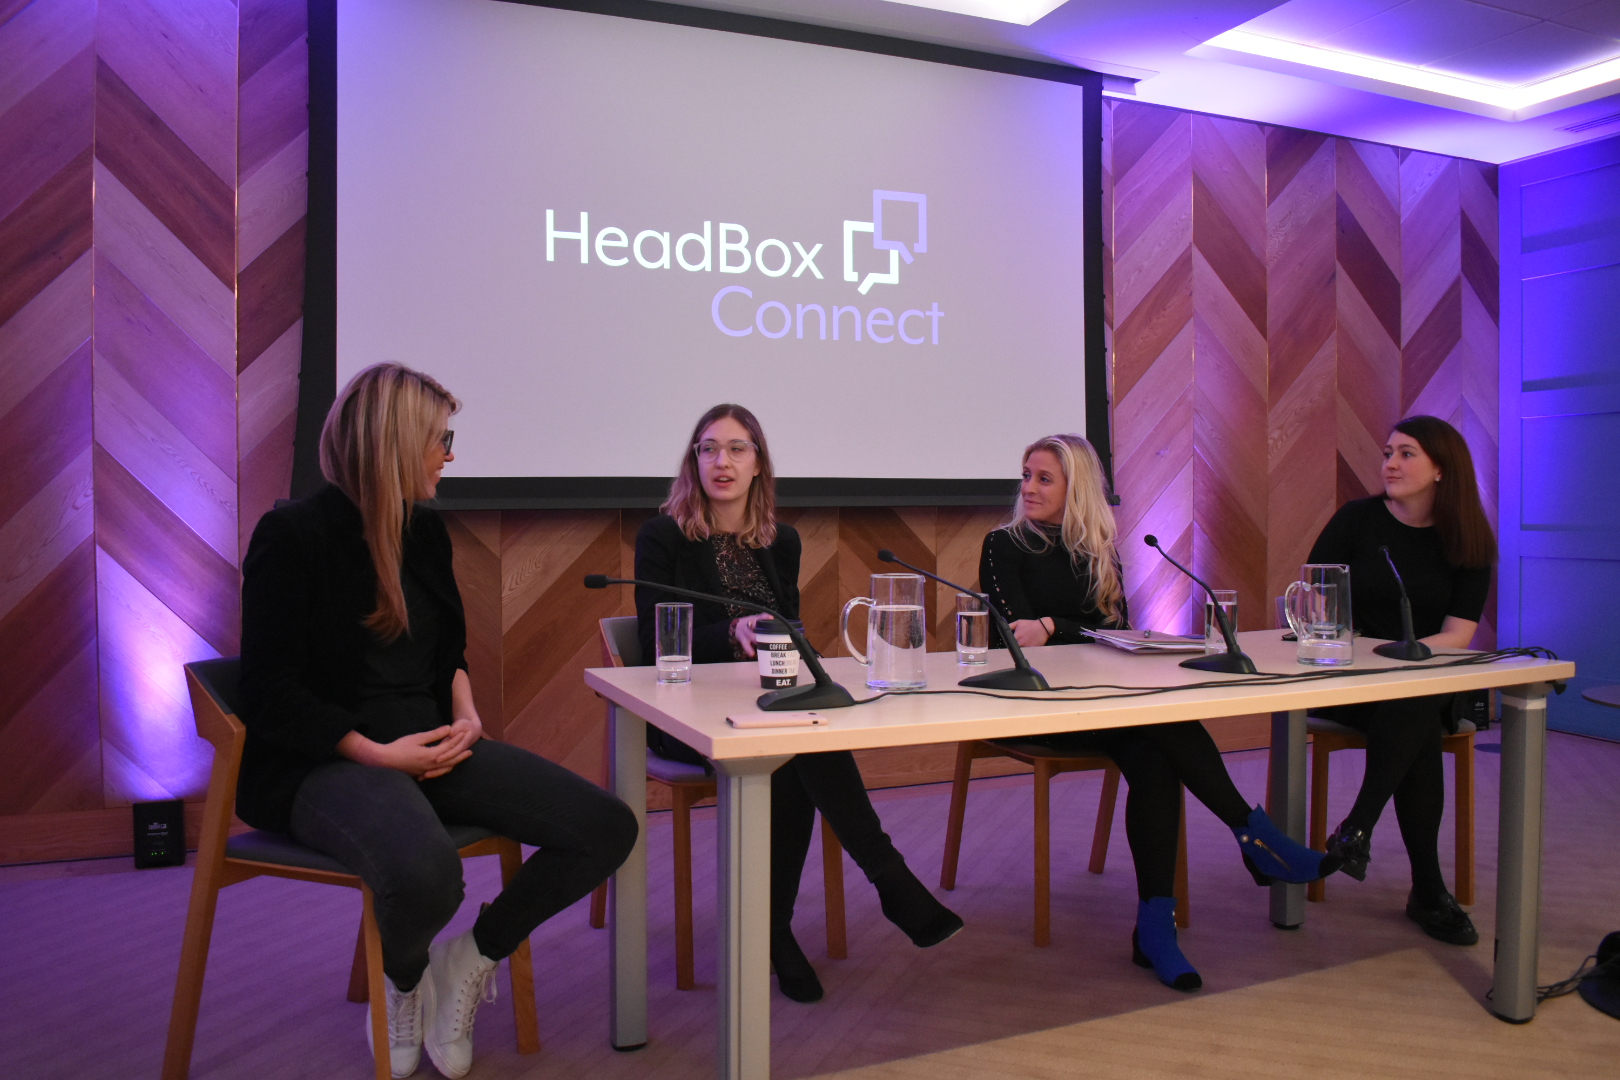 Panel event with four females sat at a wooden table with mics and glasses of water in front of a projector screen which says HeadBox Connect